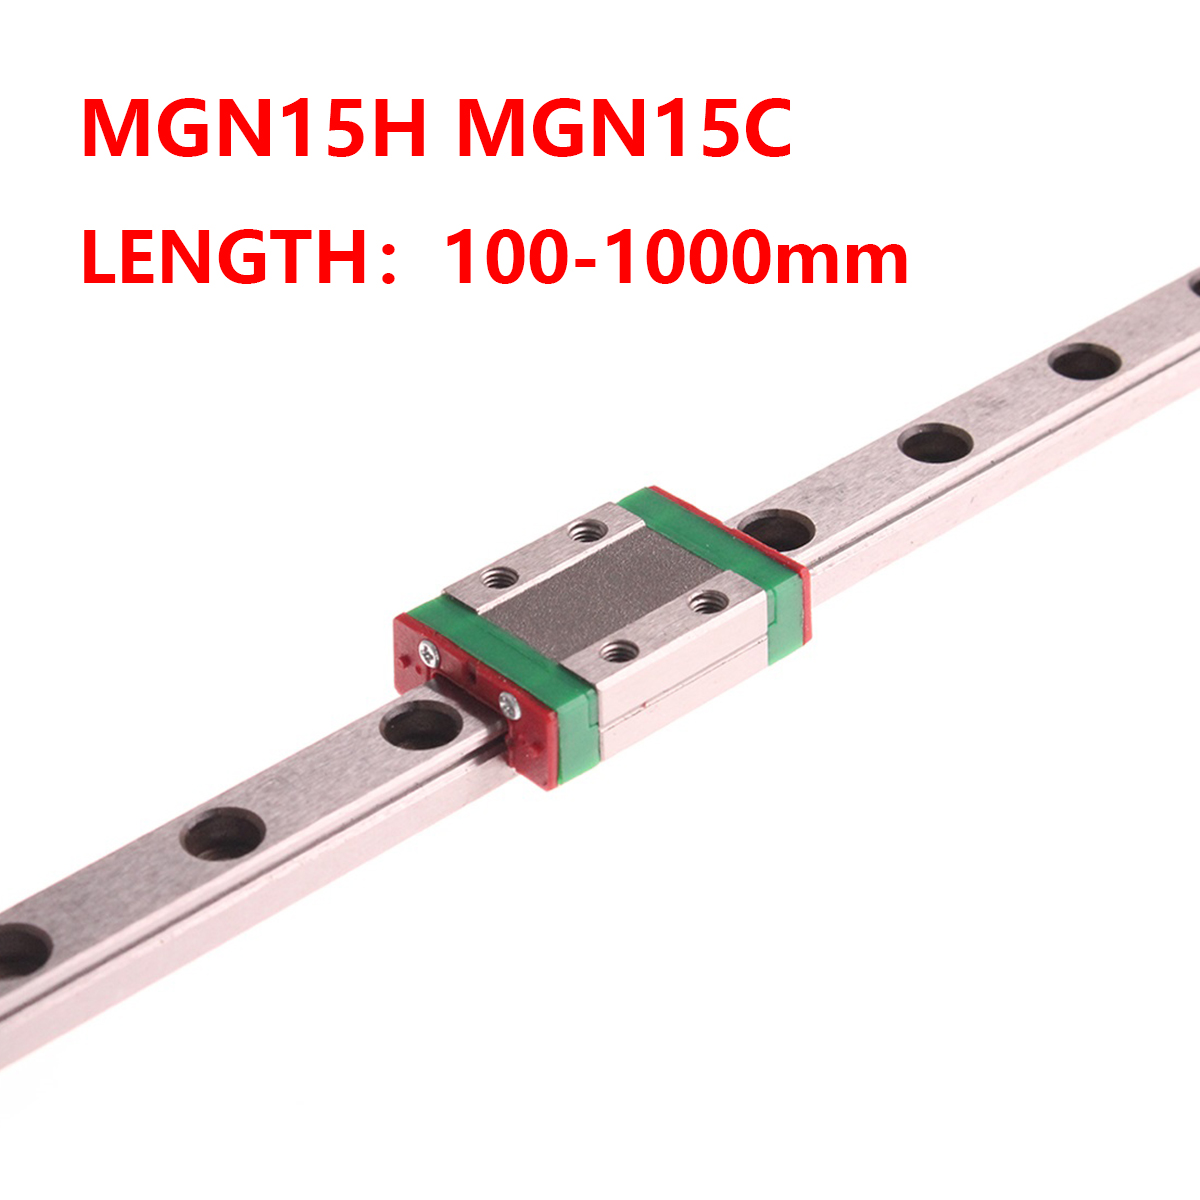 CNC Parts MGN15 350 400 450 500 800 900 1000mm Miniature Linear Rail Slide 1pc MGN Linear Guide +1pc MGN15H Or MGN15C Carriage